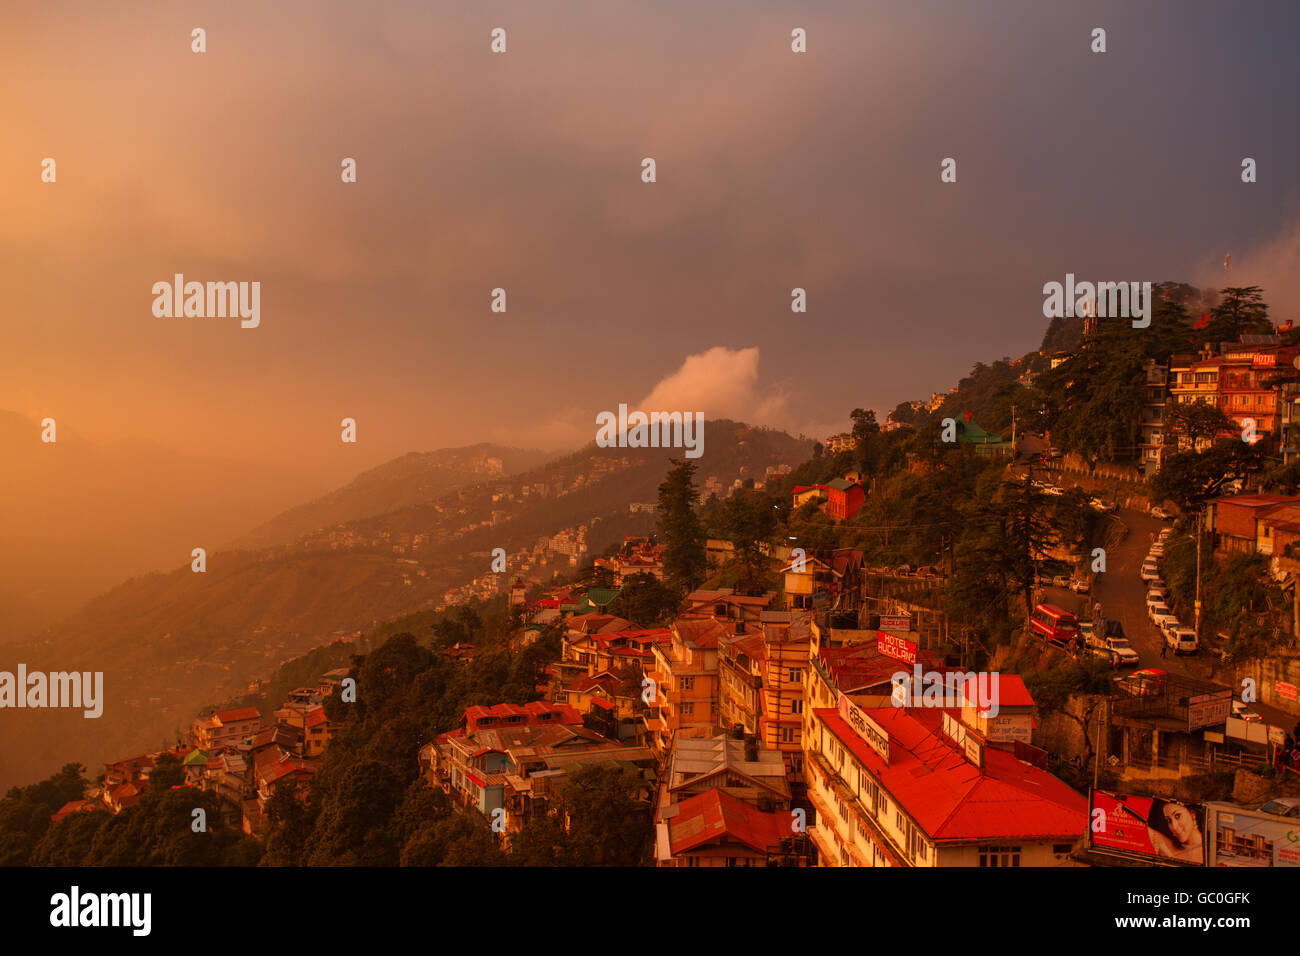 Awesome View of Shimla during Sunset - Stock Image